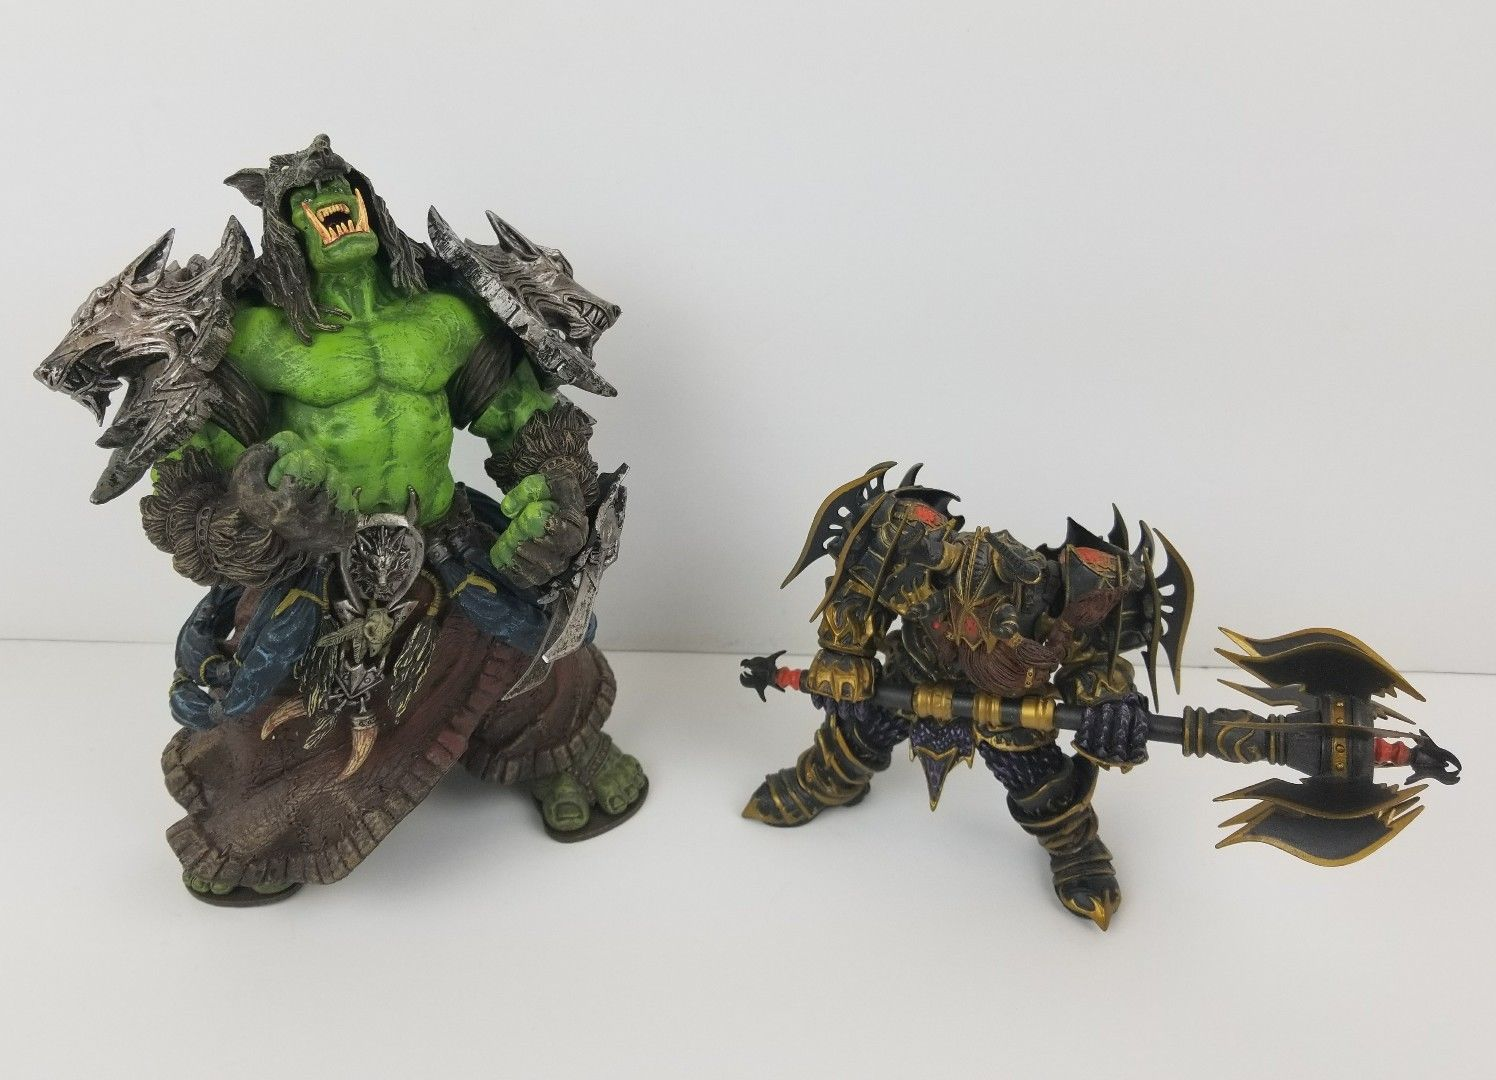 WOW World of War Rehgar Orc + Dwarf Warrior Thargas Anvilmar Figure Lot x2 war of gl aftermath